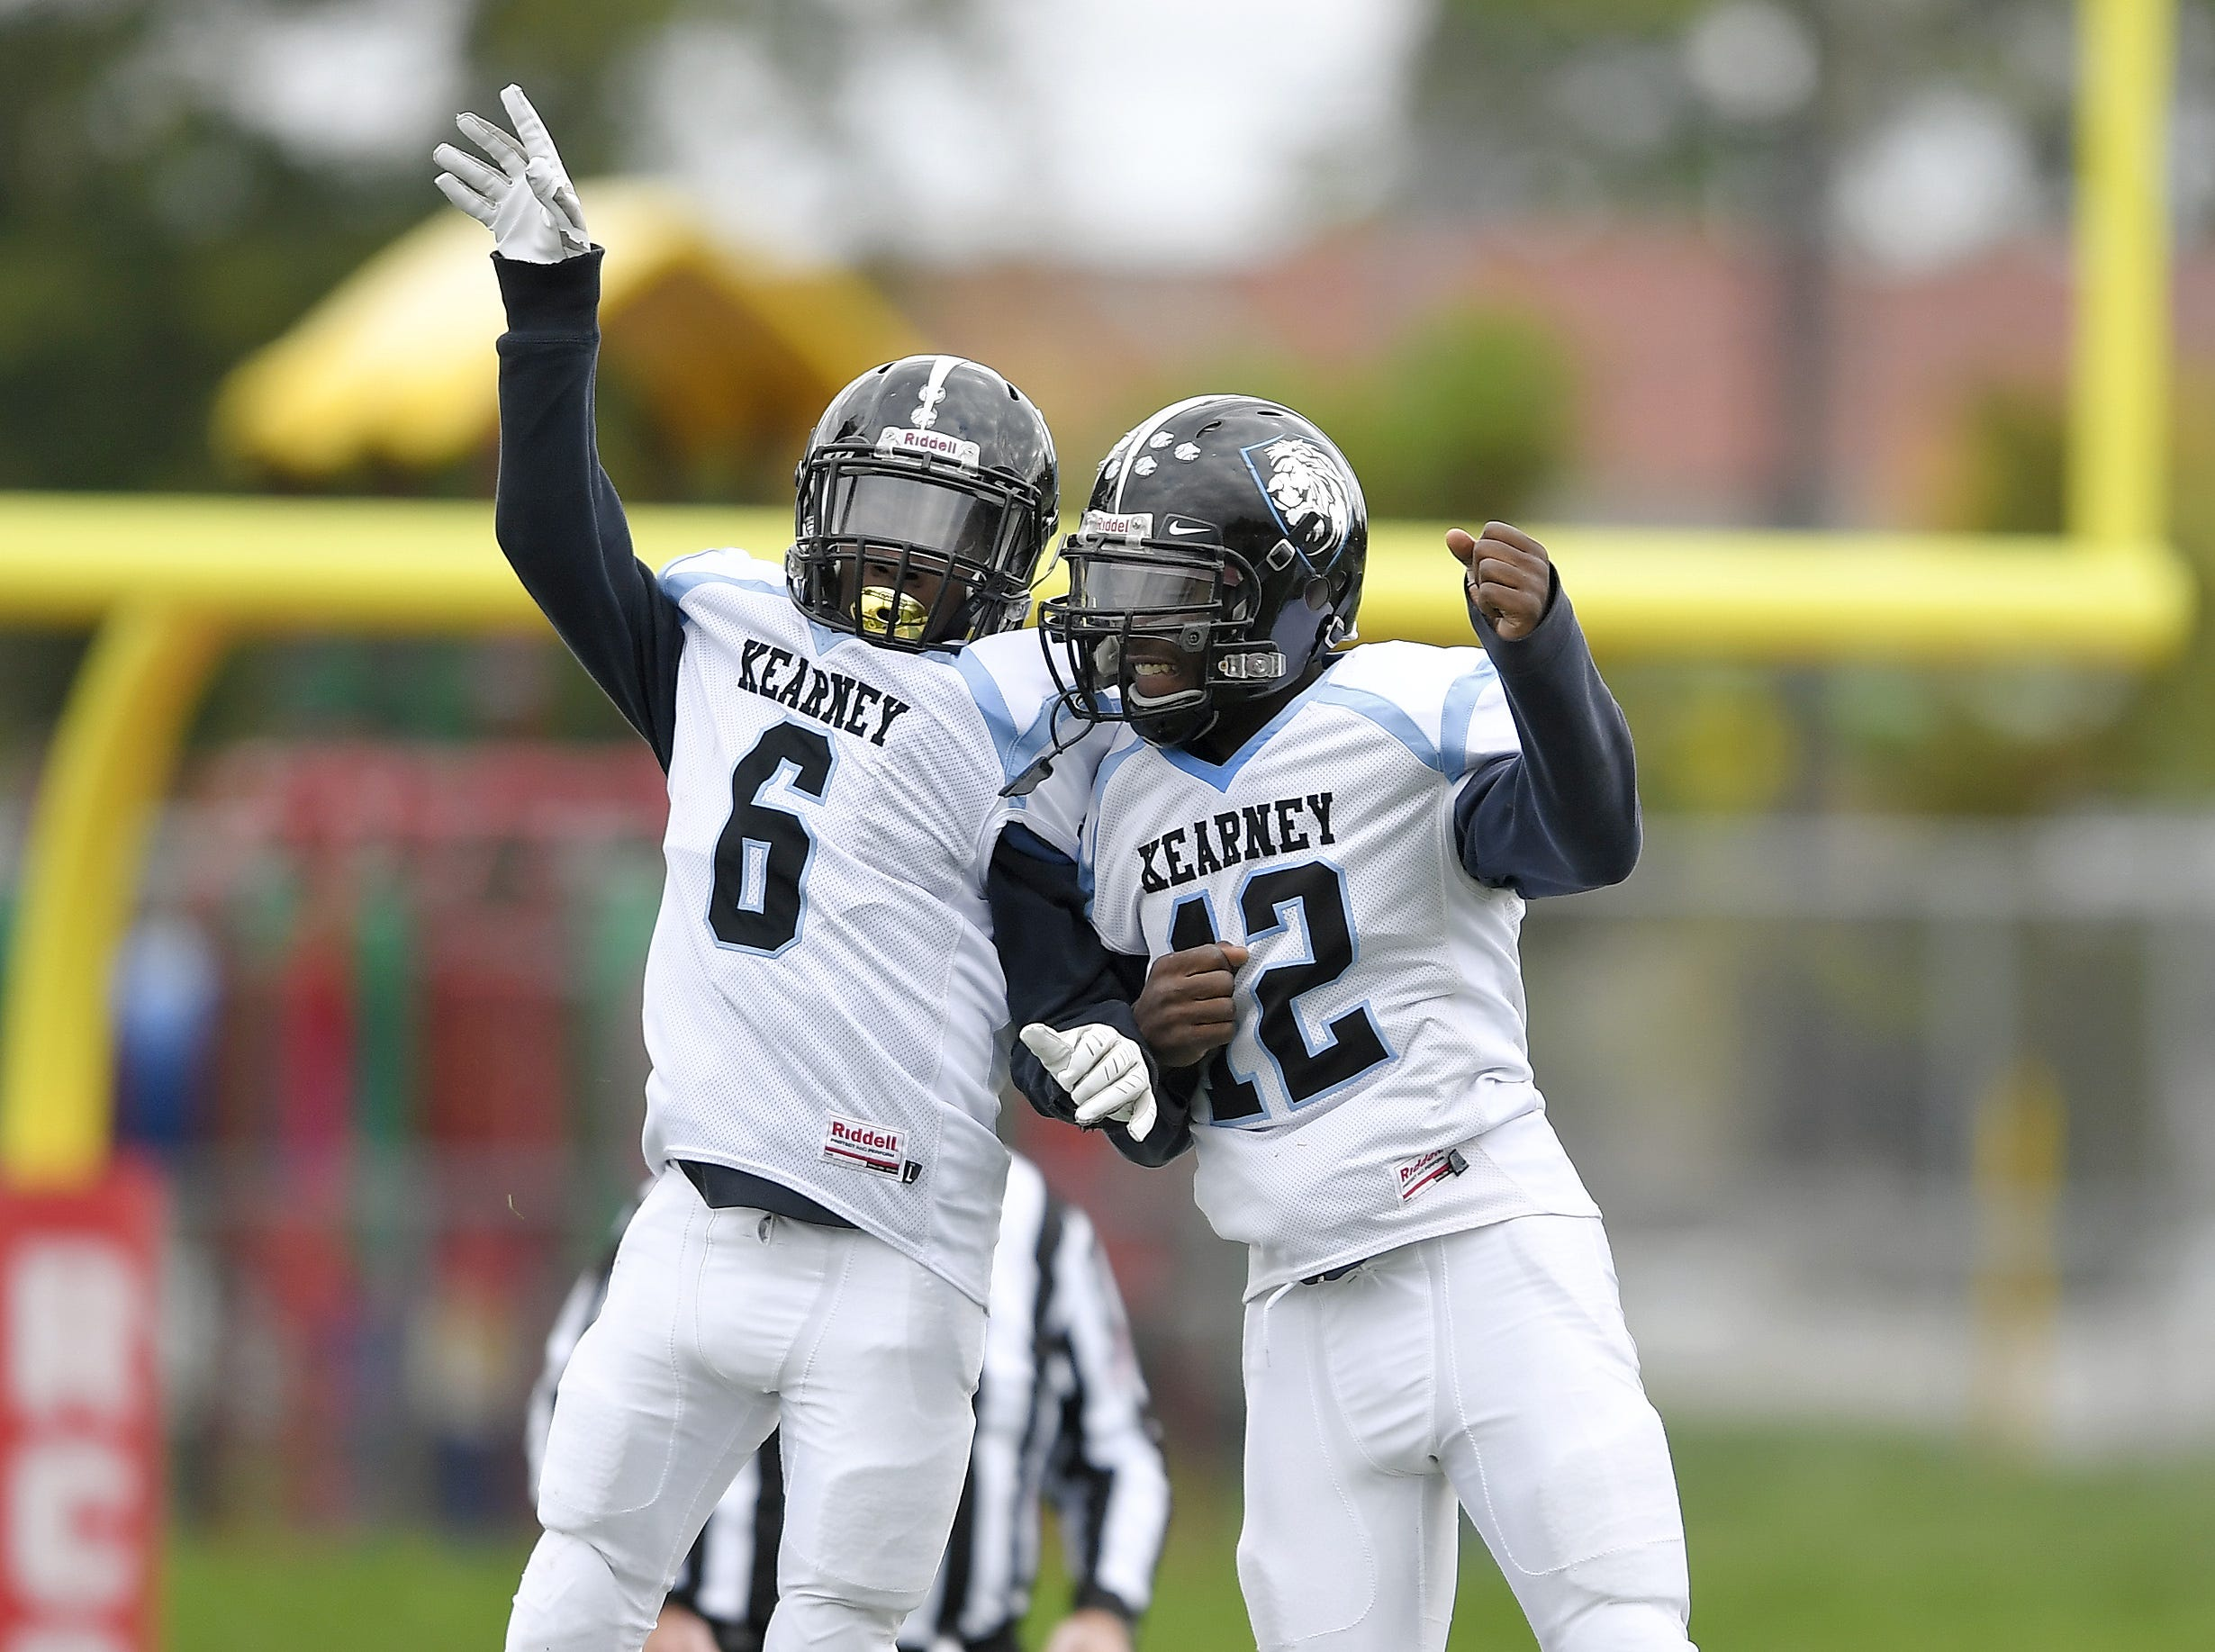 Bishop Kearney's Jami Walker, left, celebrates his inteception with Jawann Perry during a regular season game against Leadership Academy played at Franklin High School, Saturday, Oct. 13, 2018. Leadership Academy beat Bishop Kearney/Rochester Prep 12-6.